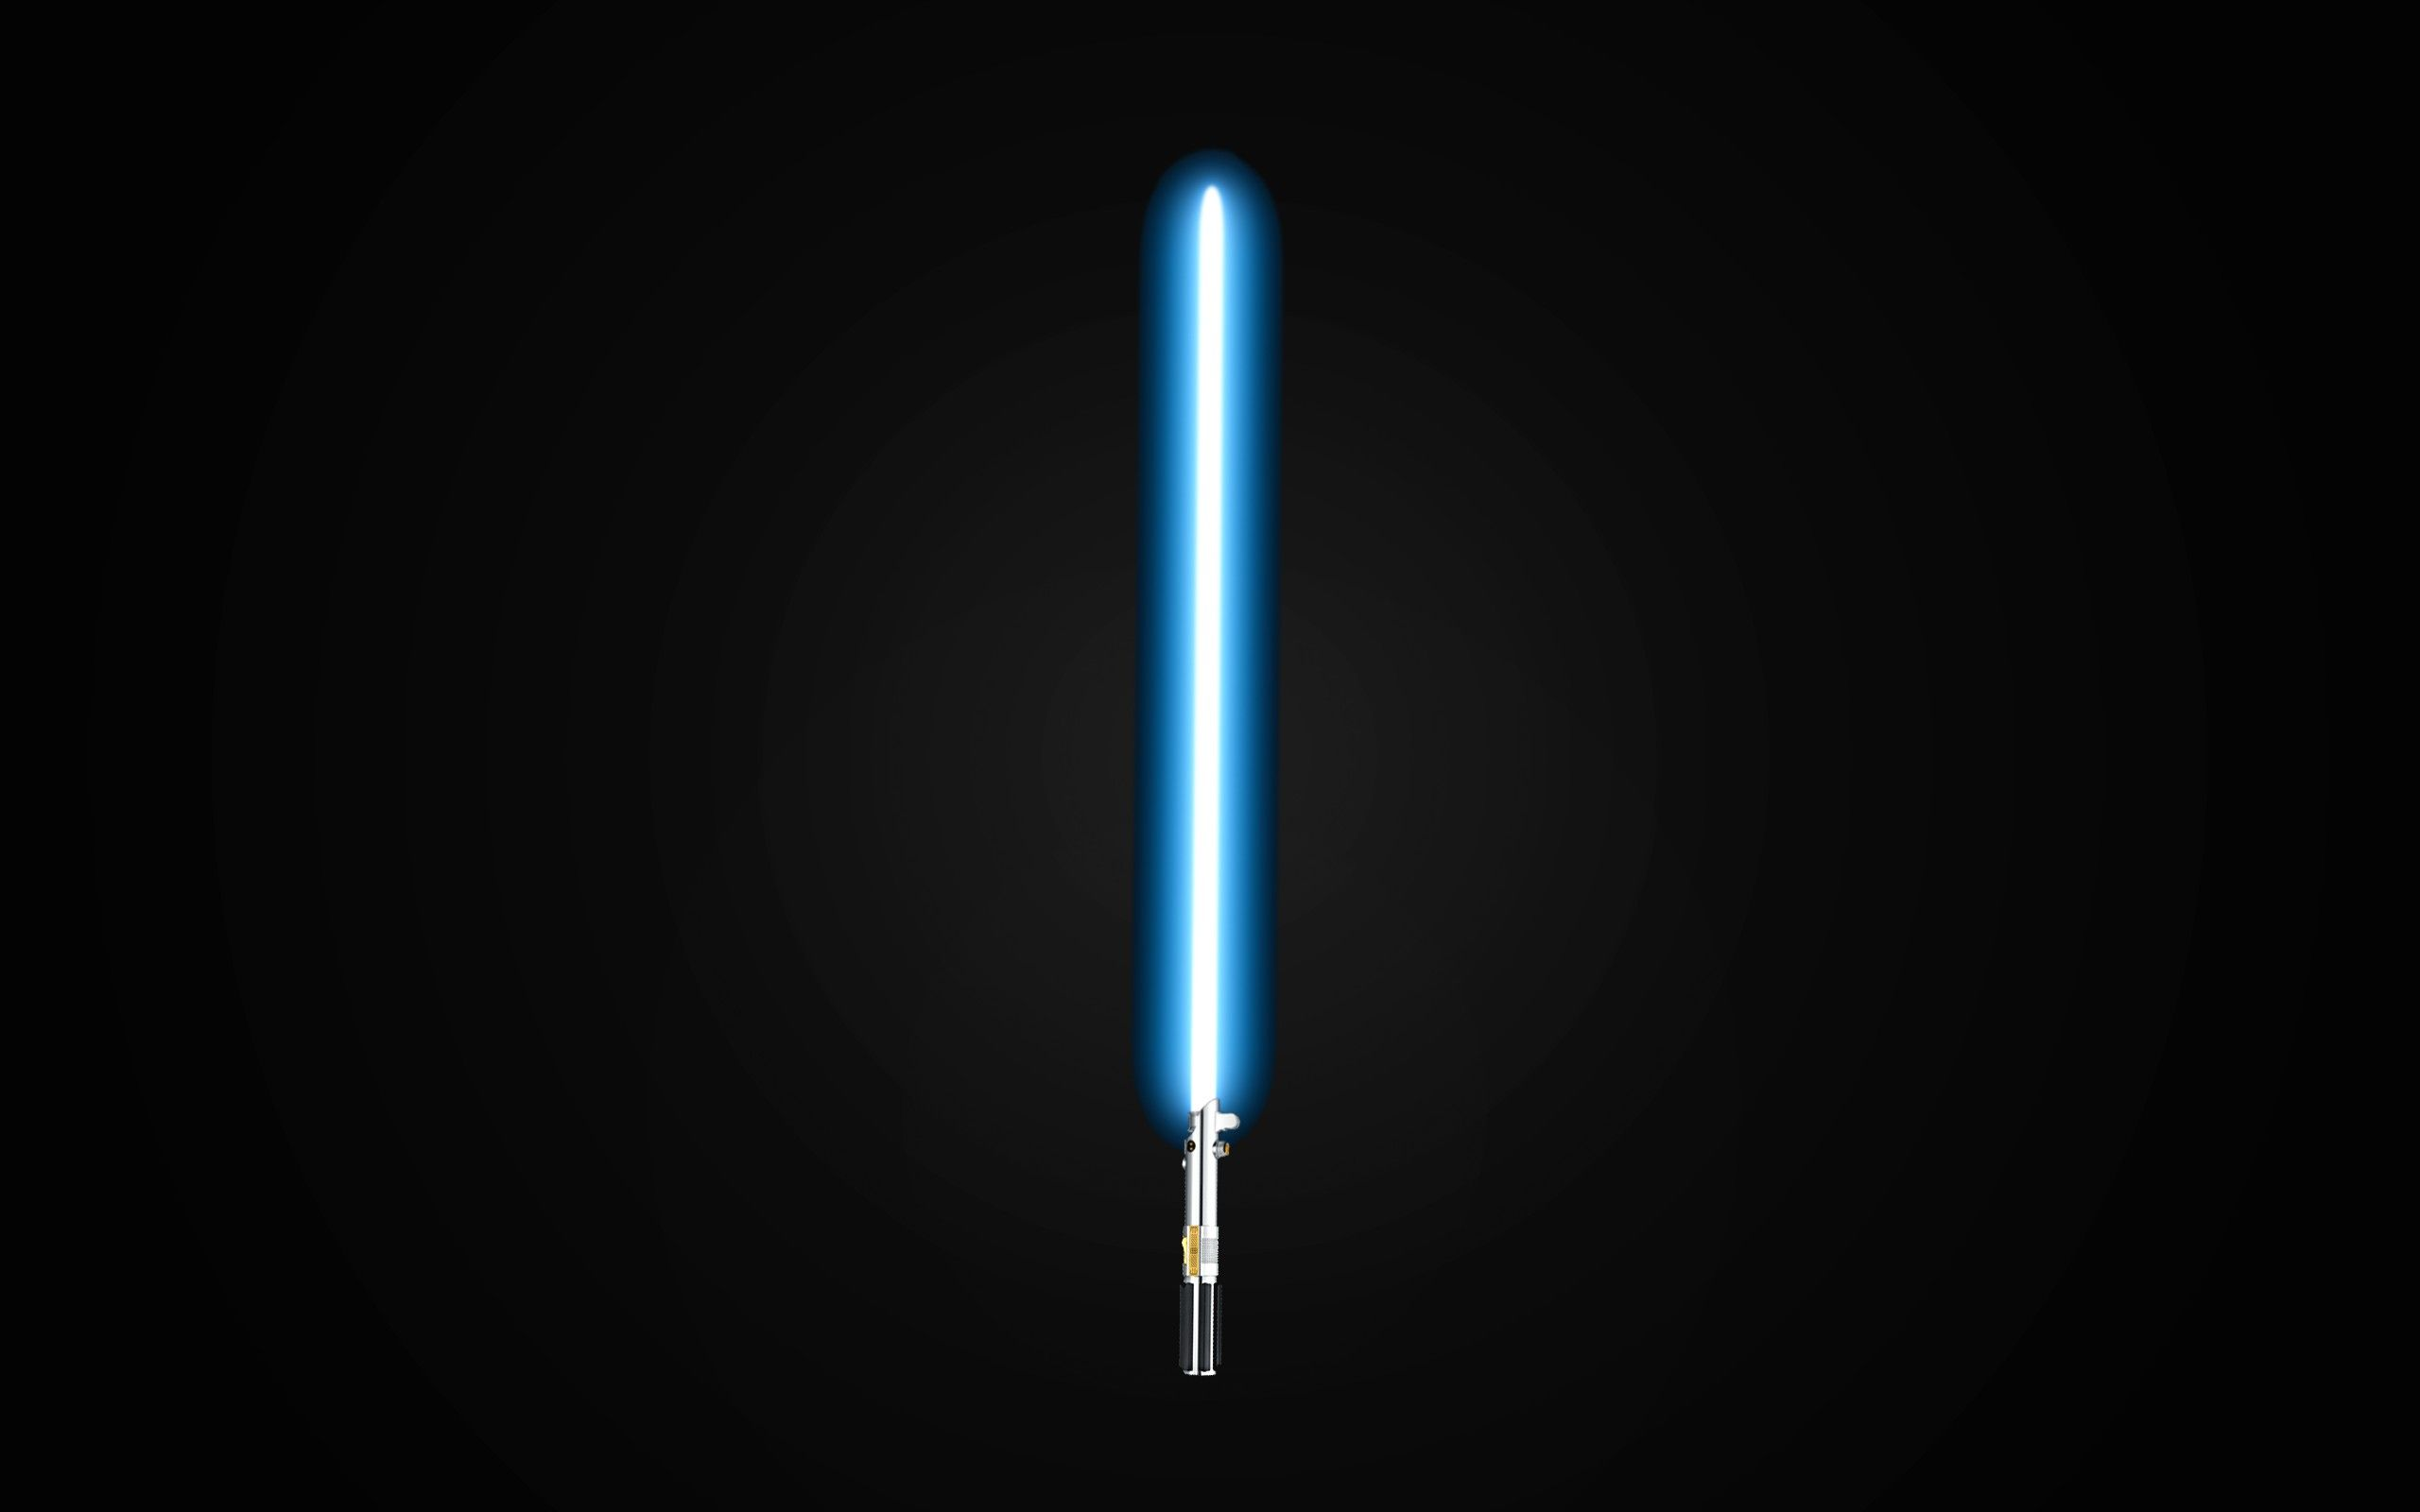 Blue Lightsaber Wallpapers Top Free Blue Lightsaber Backgrounds Wallpaperaccess